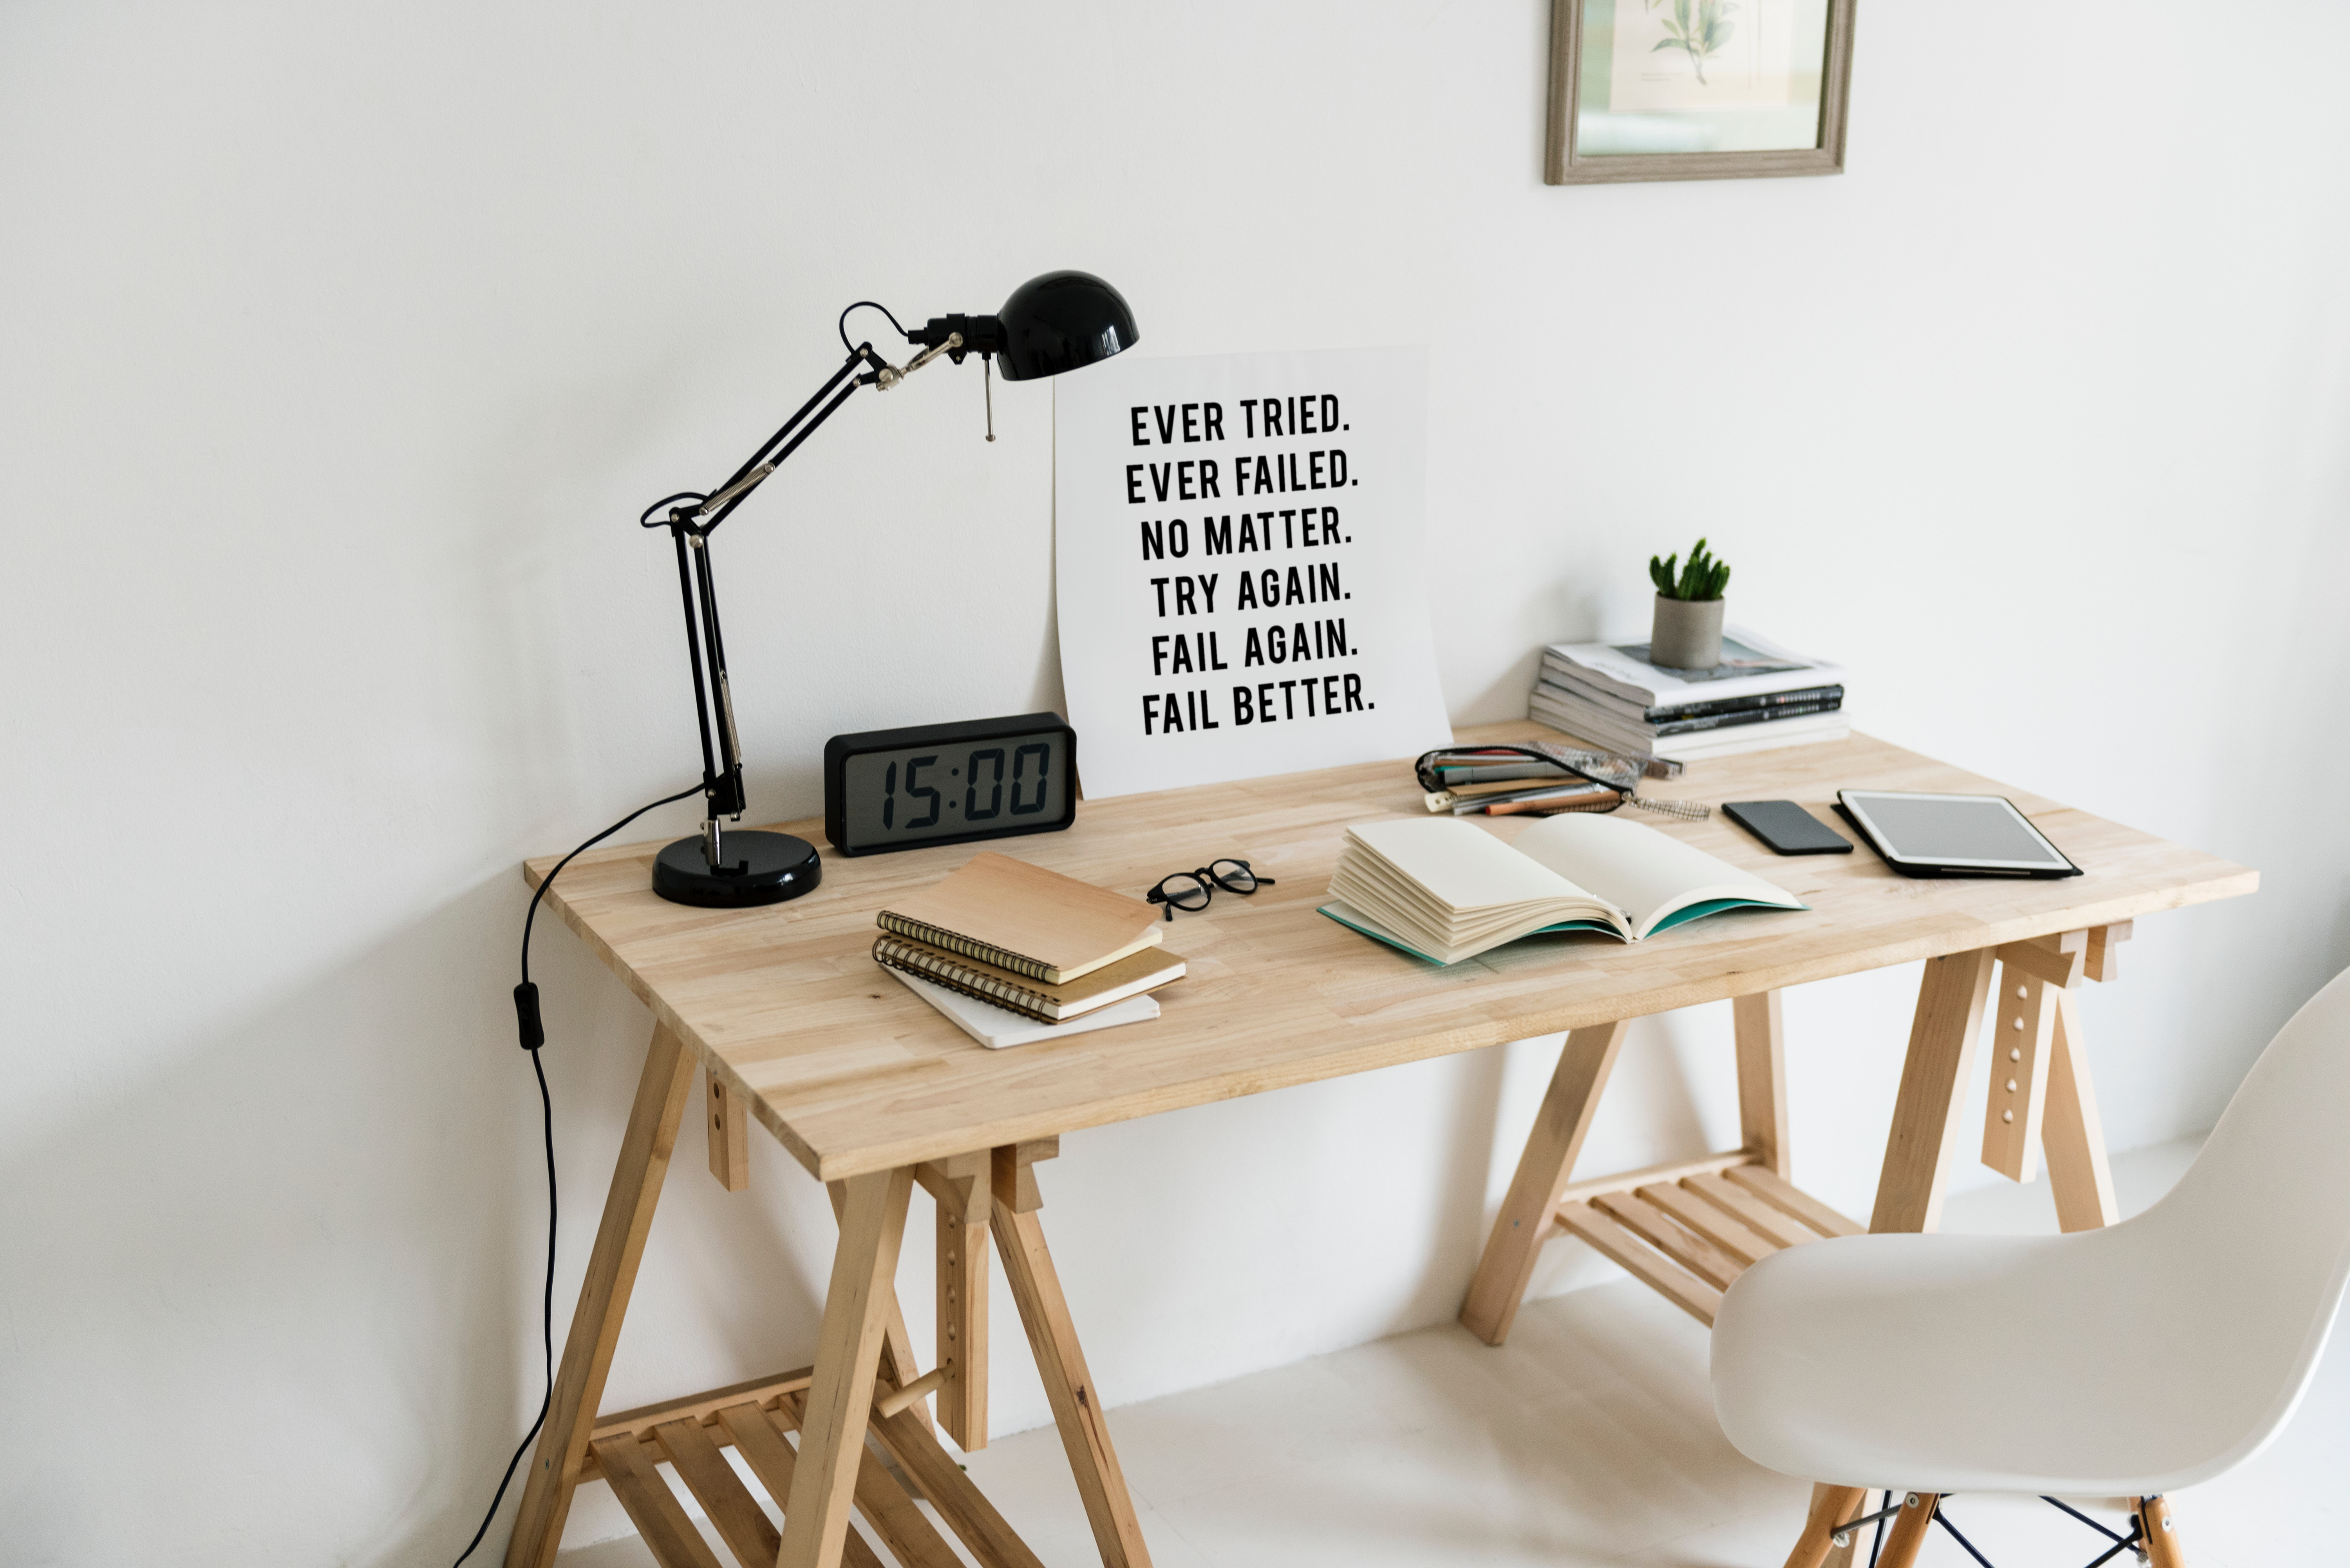 Wooden Desk With Books On Top, Books, Wooden table, Time, Tablet, HQ Photo